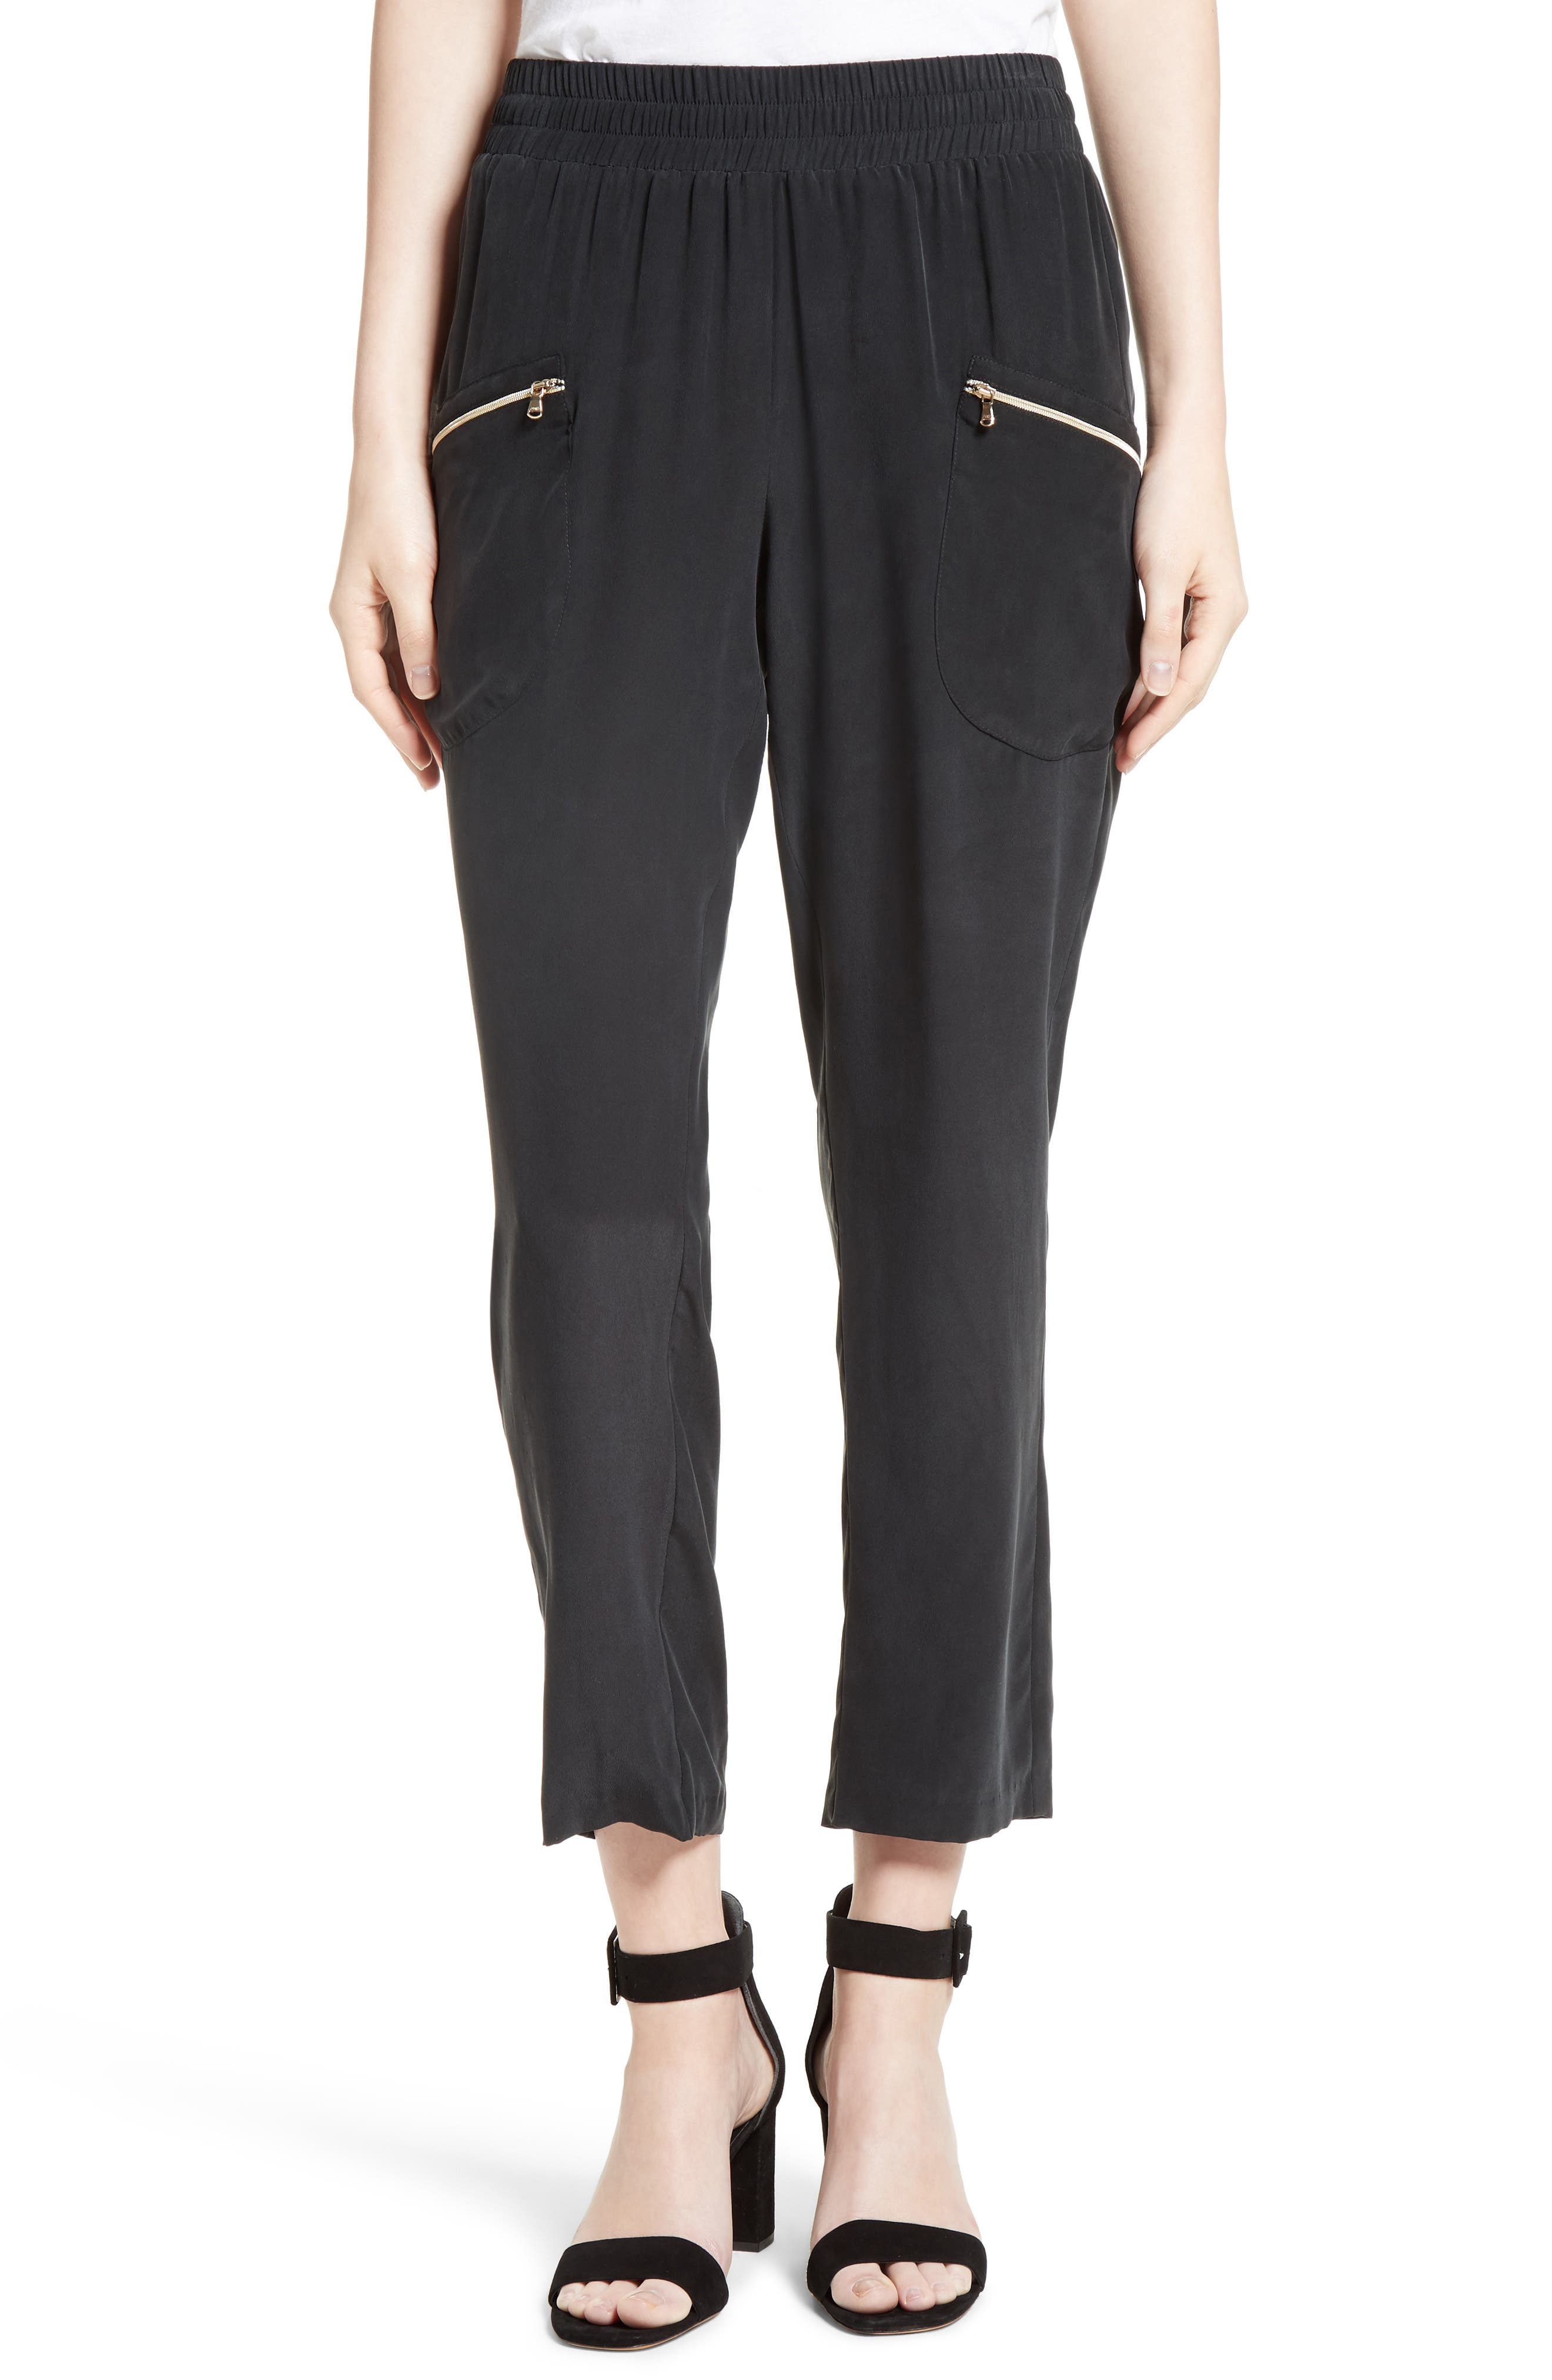 L'AGENCE Draped Silk Cargo Pants, Main, color, 001